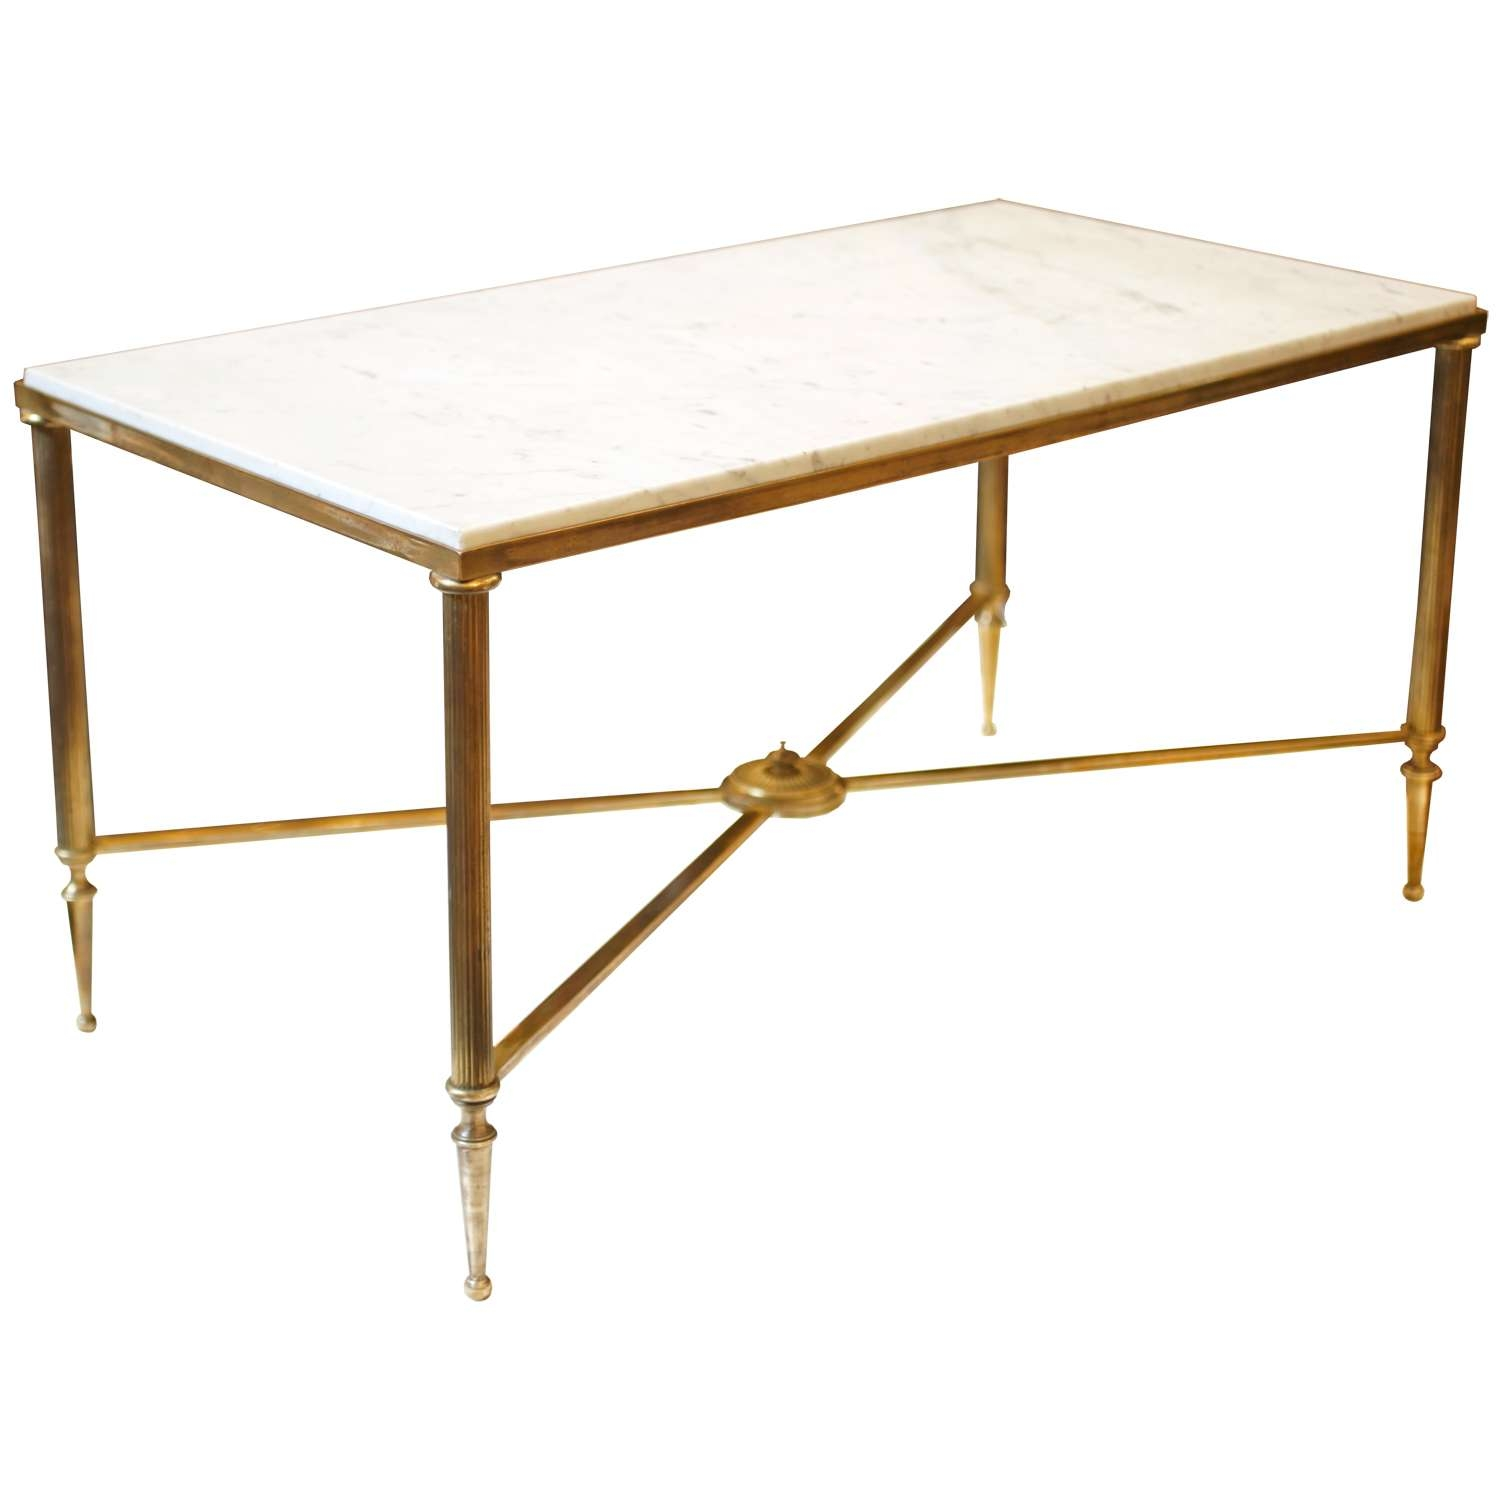 Coffee Tables : Brass Coffee Table With Glass Top Uk Base Round Regarding Popular Bronze And Glass Coffee Tables (View 14 of 20)